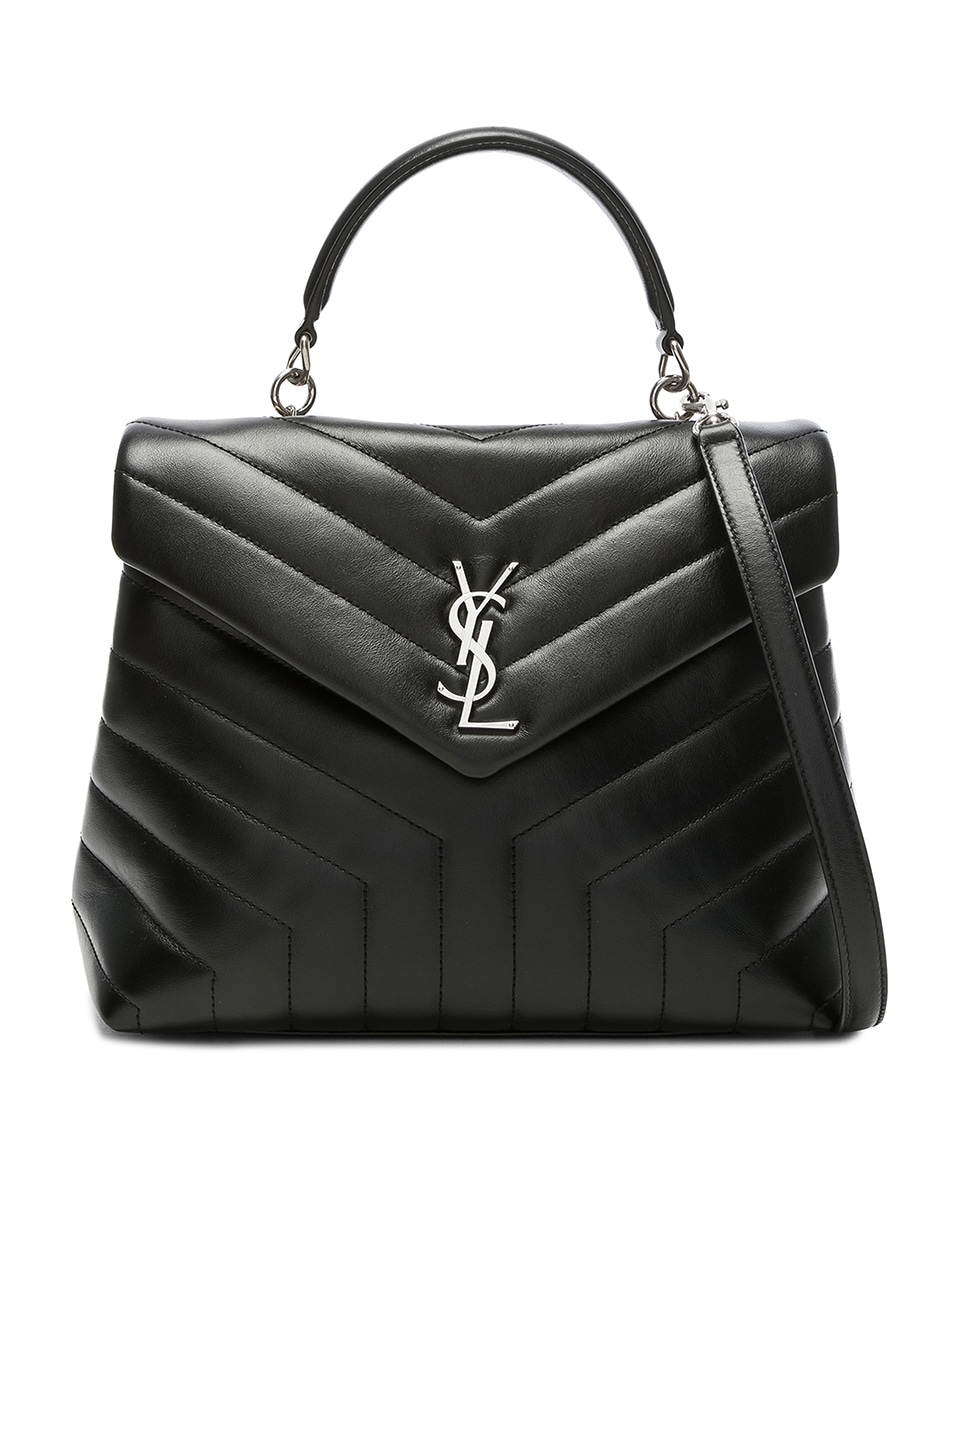 Image 1 of Saint Laurent Monogramme Loulou Top Handle Bag in Black ab9a1a26fb7b0